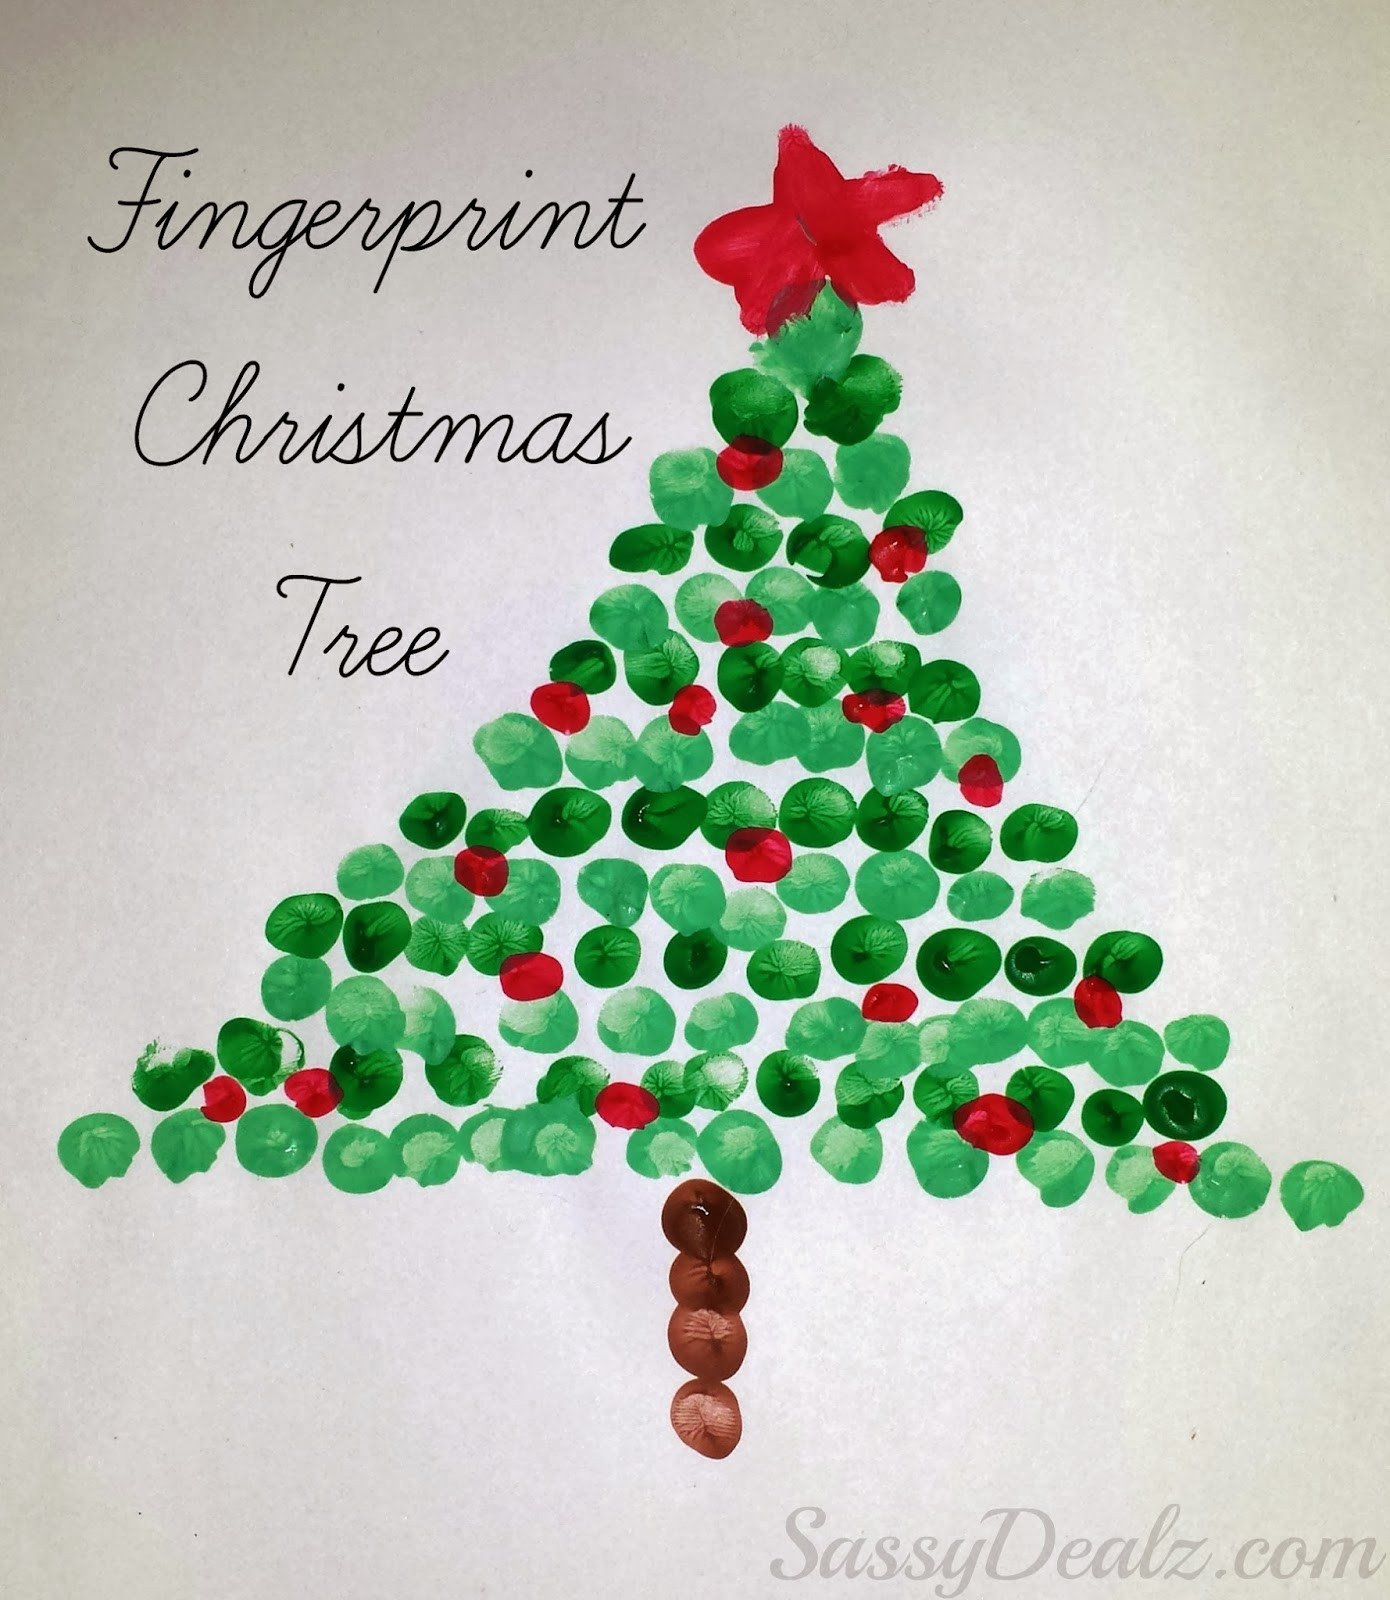 Best ideas about Craft Ideas For Christmas . Save or Pin Christmas Fingerprint Crafts U Create Now.